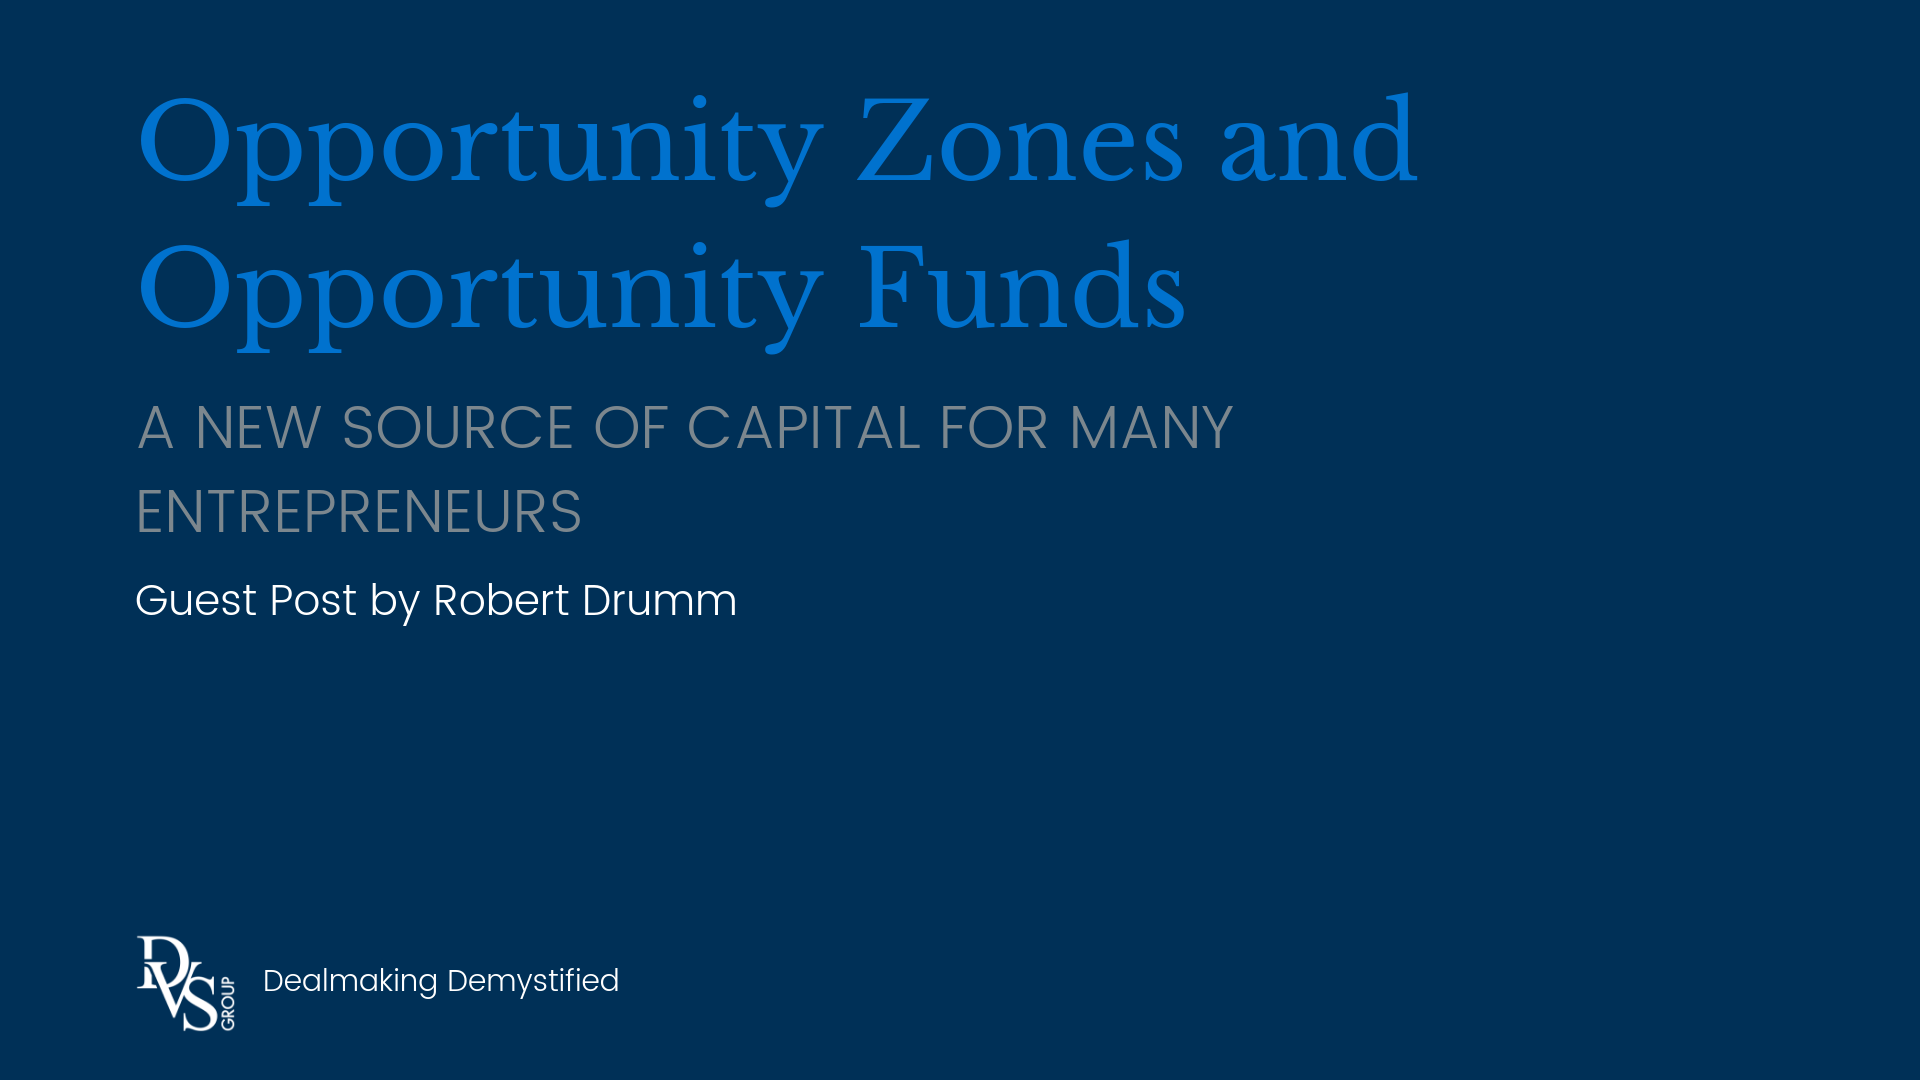 Opportunity Zones and Opportunity Funds